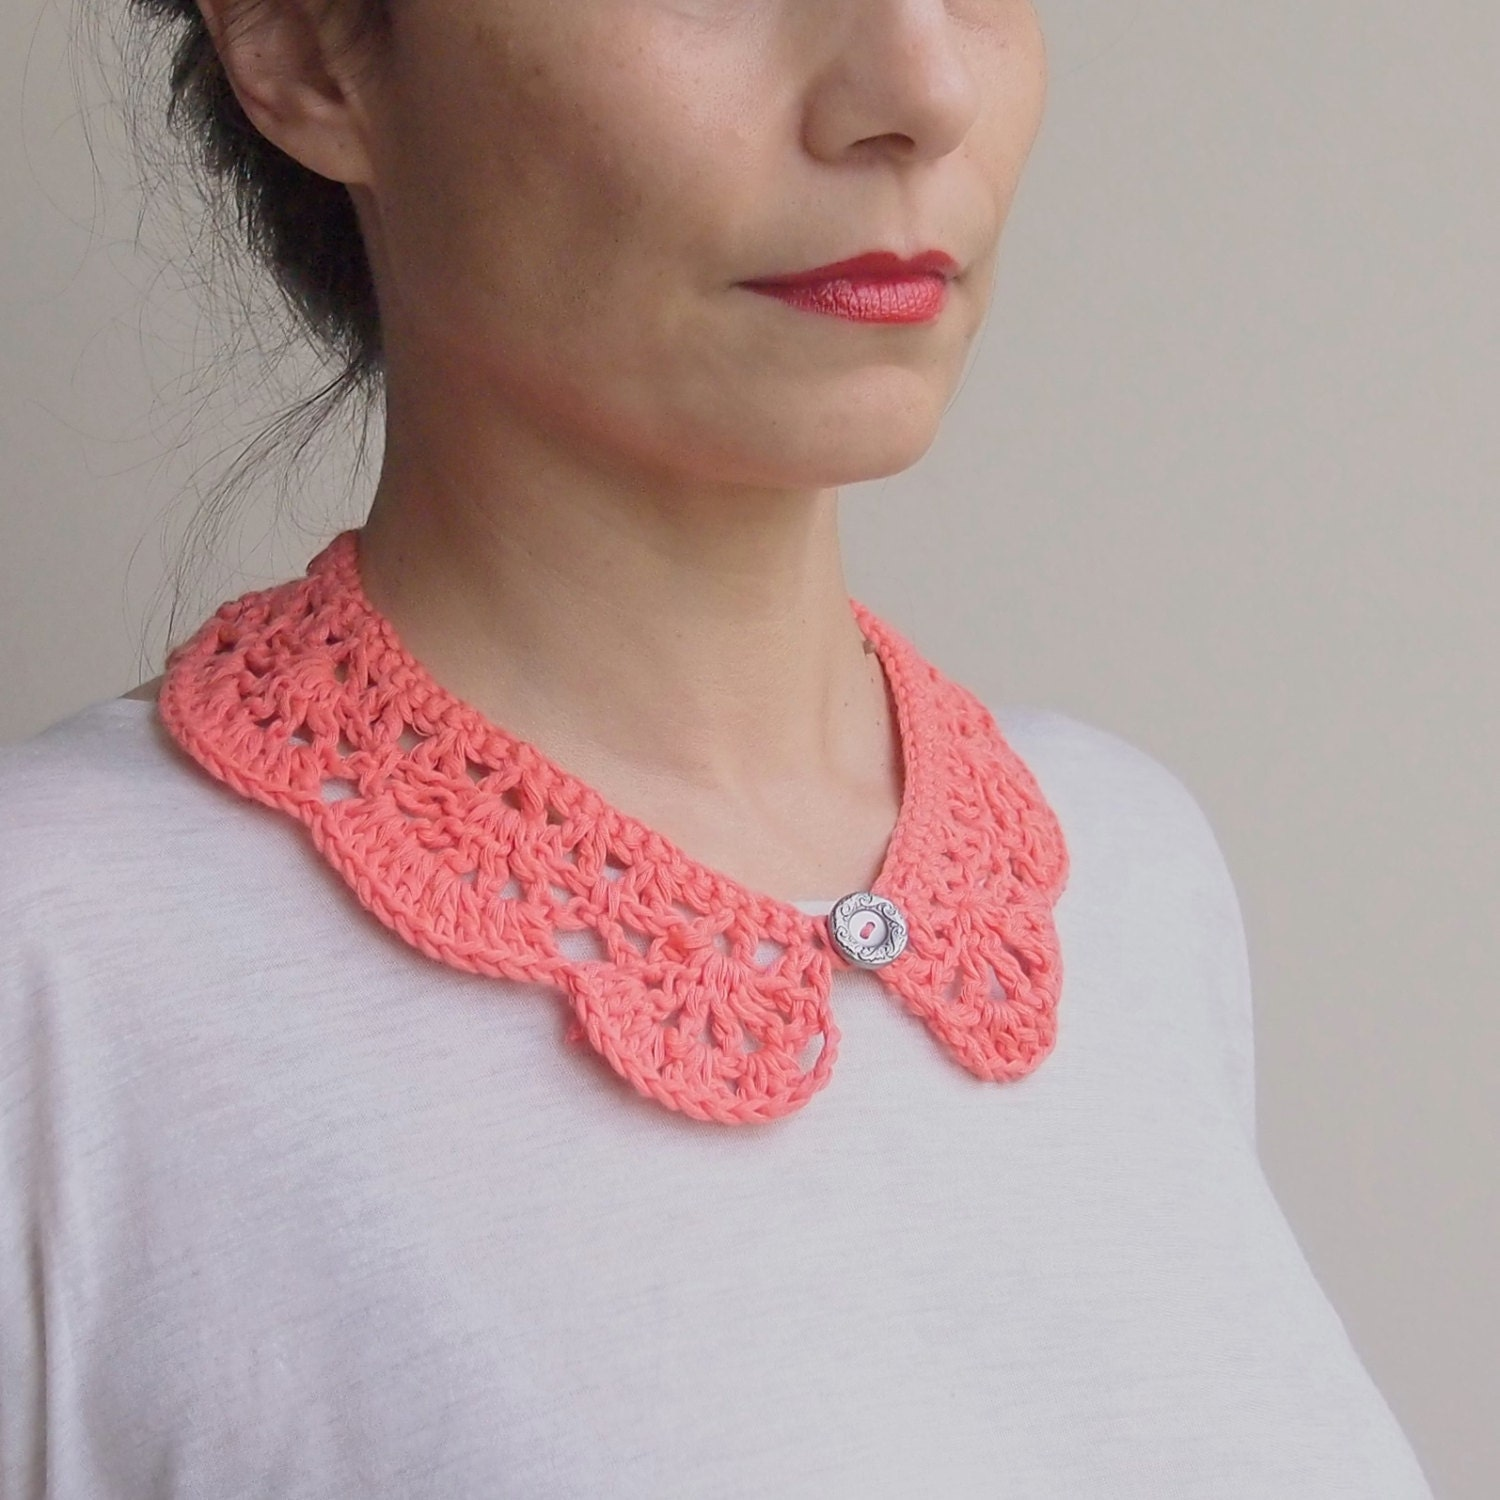 Crochet pattern woman collar peter pan girl collar crochet cowl this is a digital file bankloansurffo Image collections